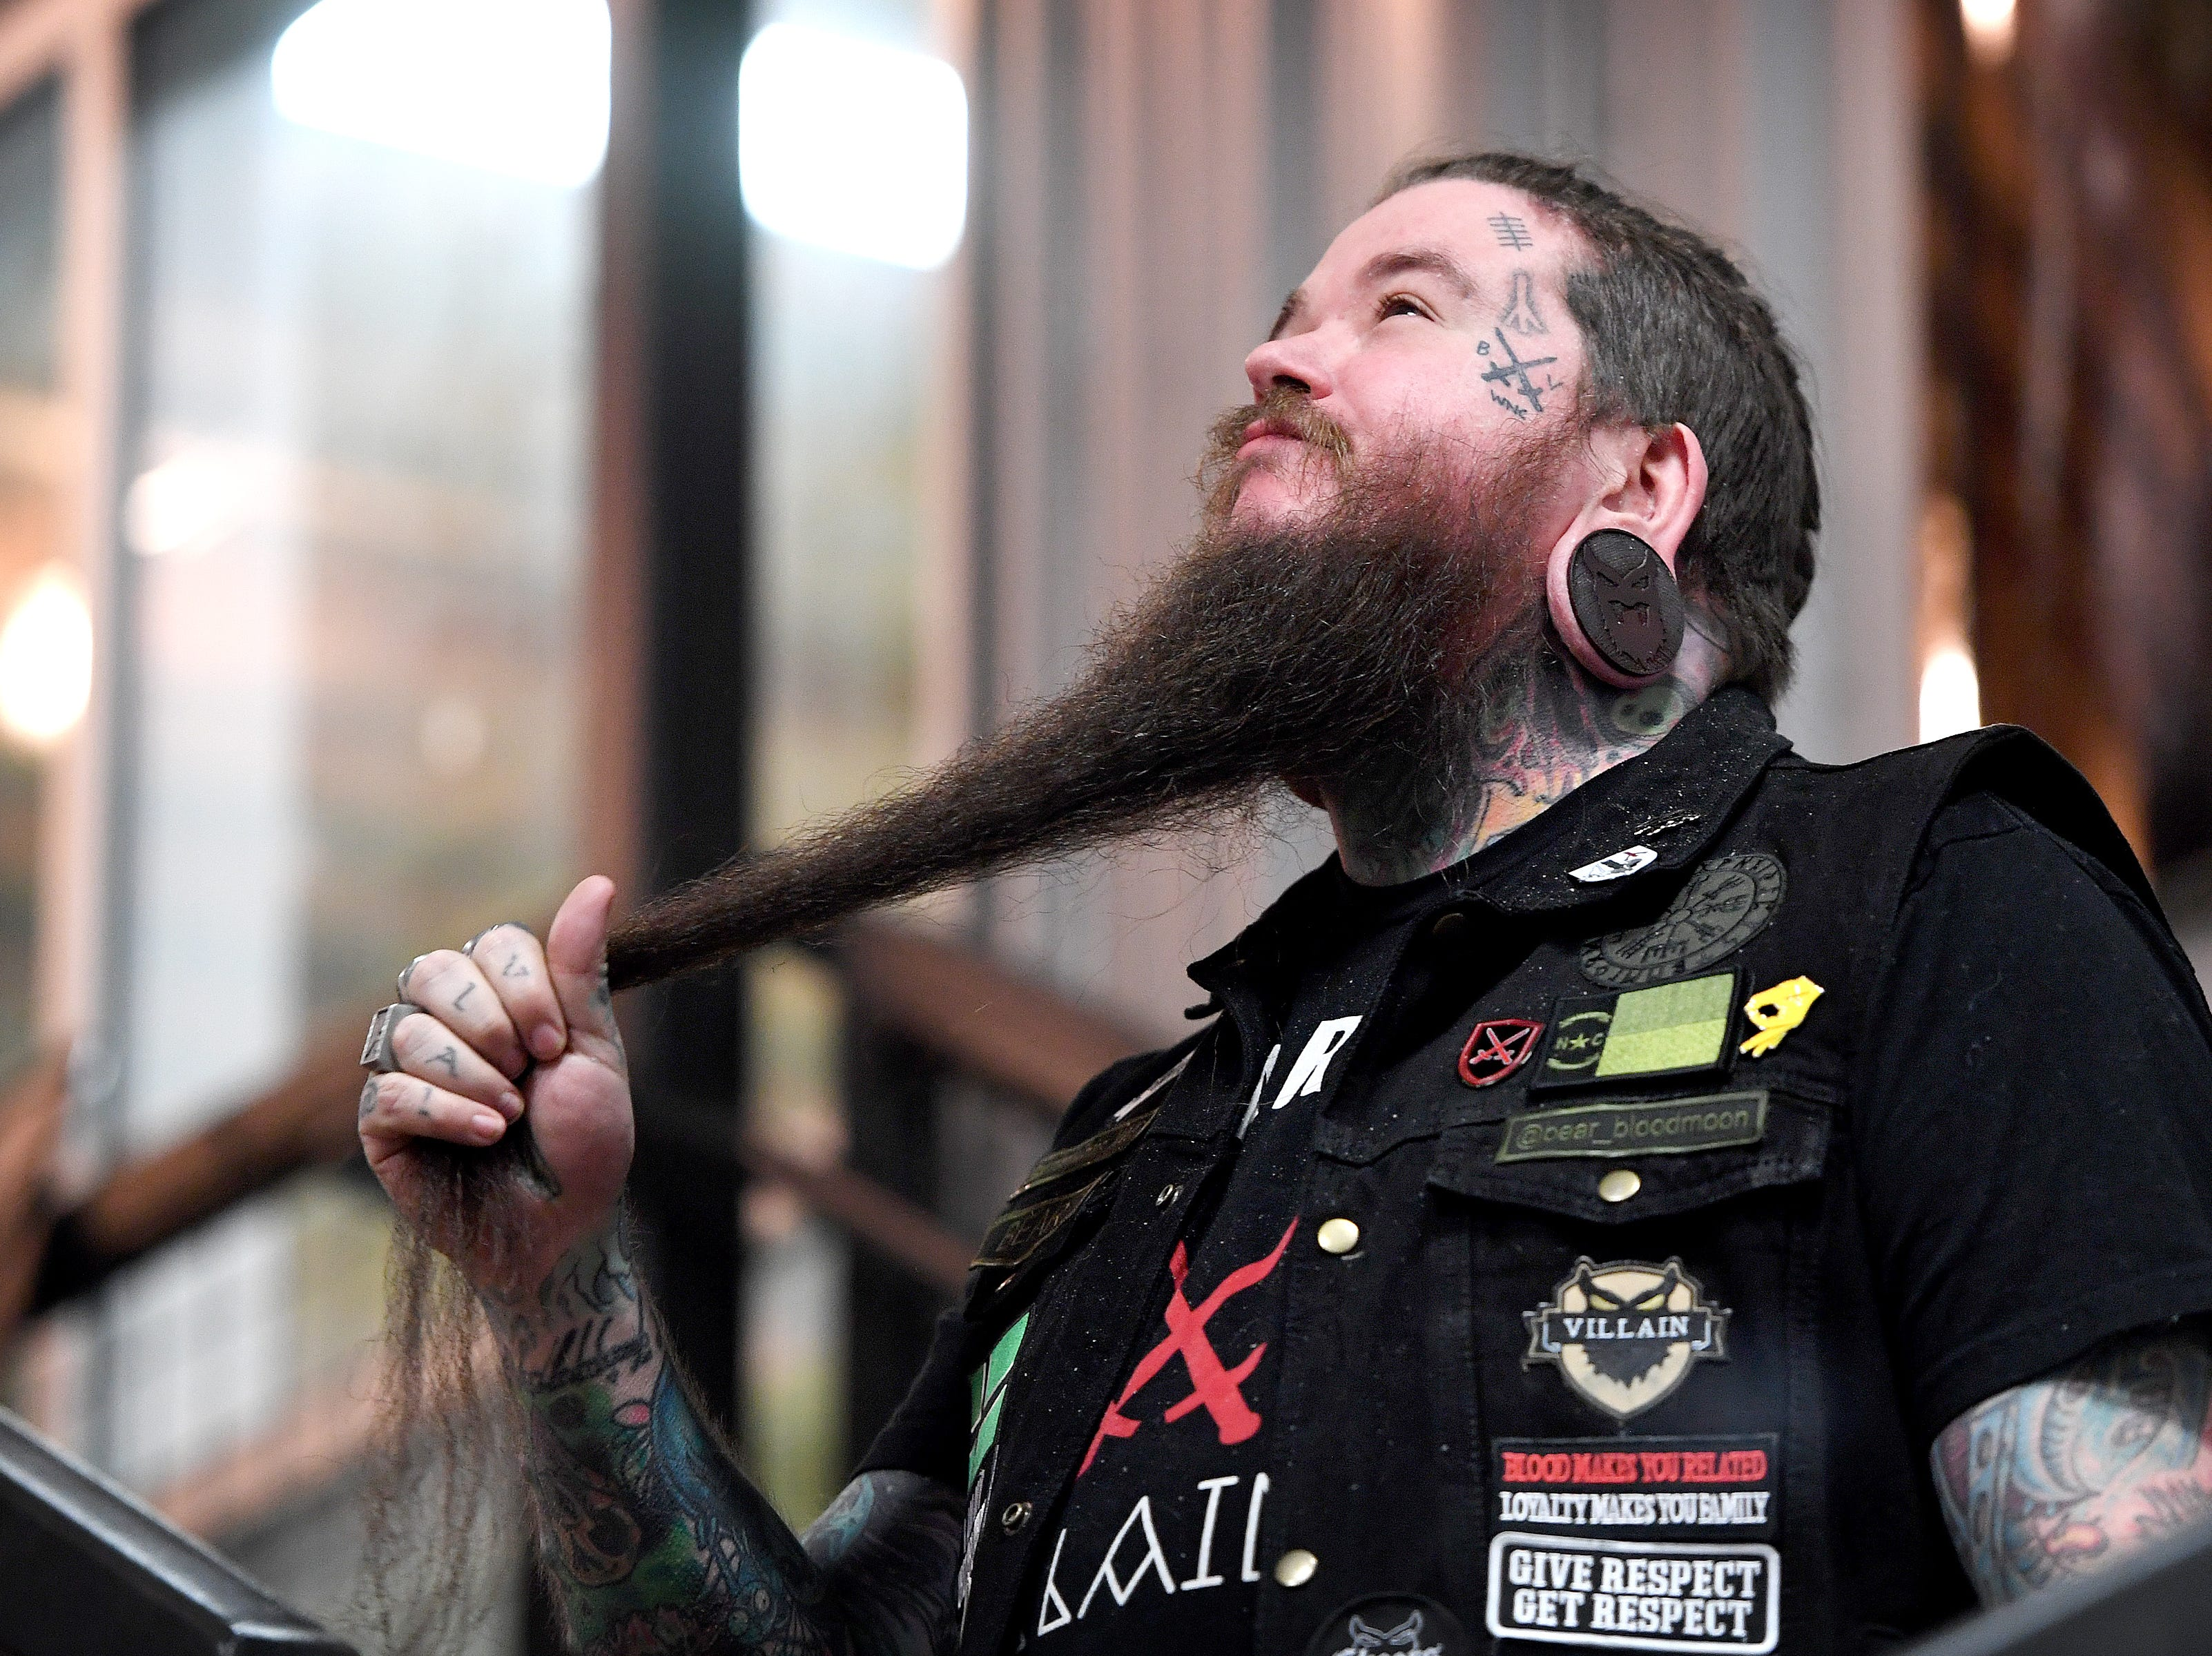 Bear Russell strokes his beard as he competes in the beard contest of Winter Beardfest at Bold Rock Hard Cider in Mills River on Jan. 12, 2019. Proceeds from the competition benefitted the Black Mountain Home Foster Care. Organizers are hoping to make the event annual.